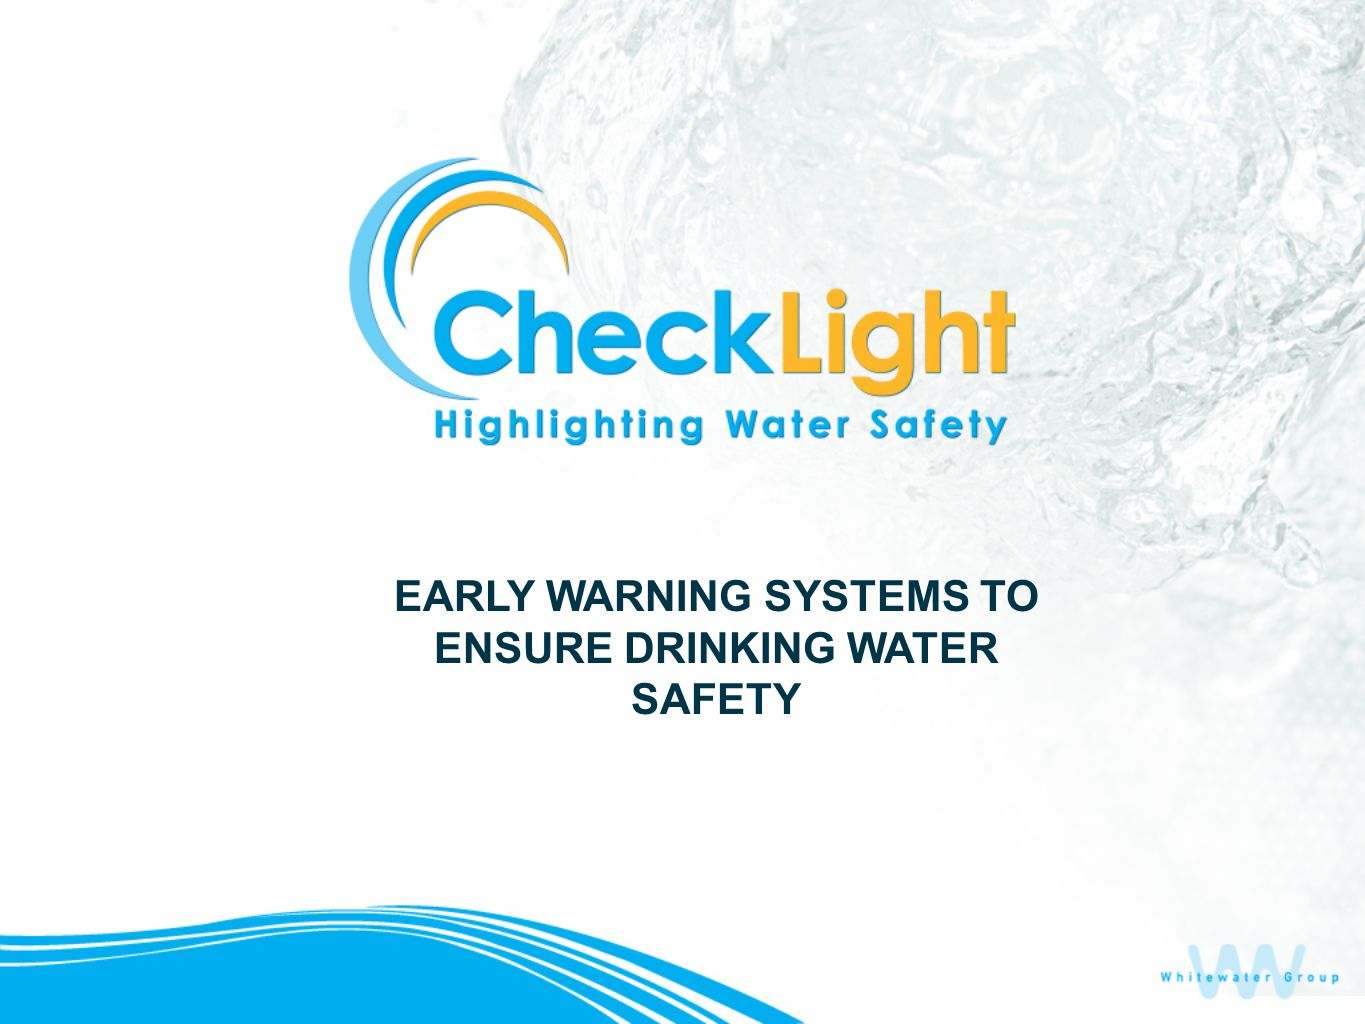 EARLY WARNING SYSTEMS TO ENSURE DRINKING WATER SAFETY